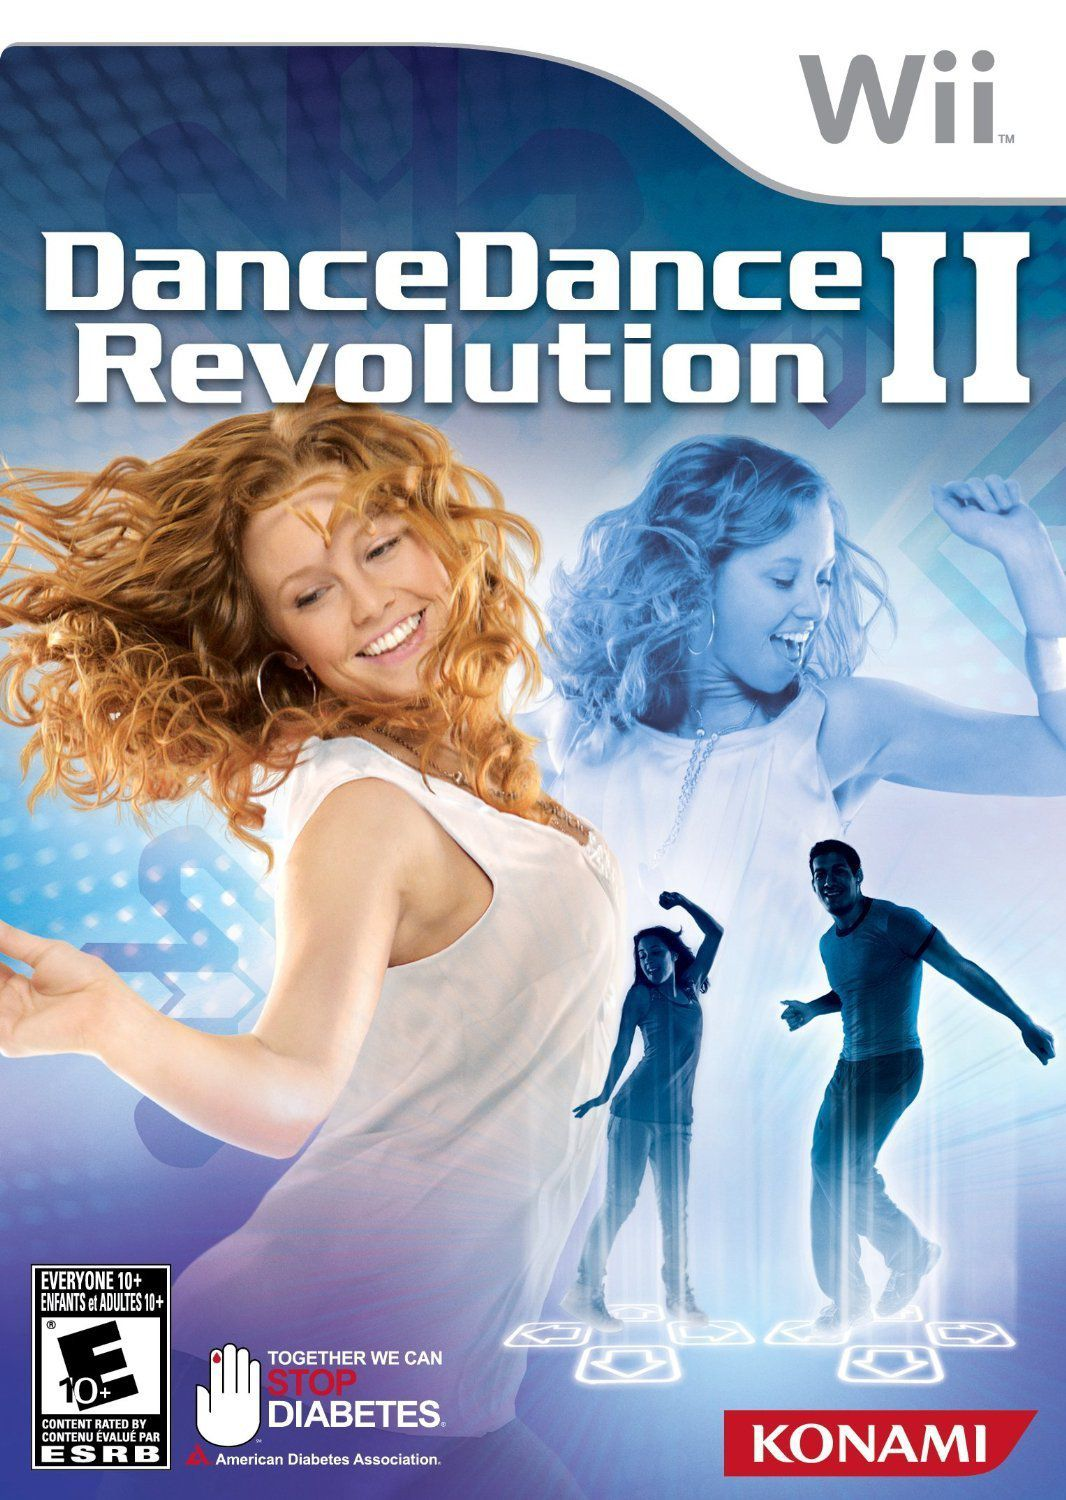 Publicity still for Dance Dance Revolution II